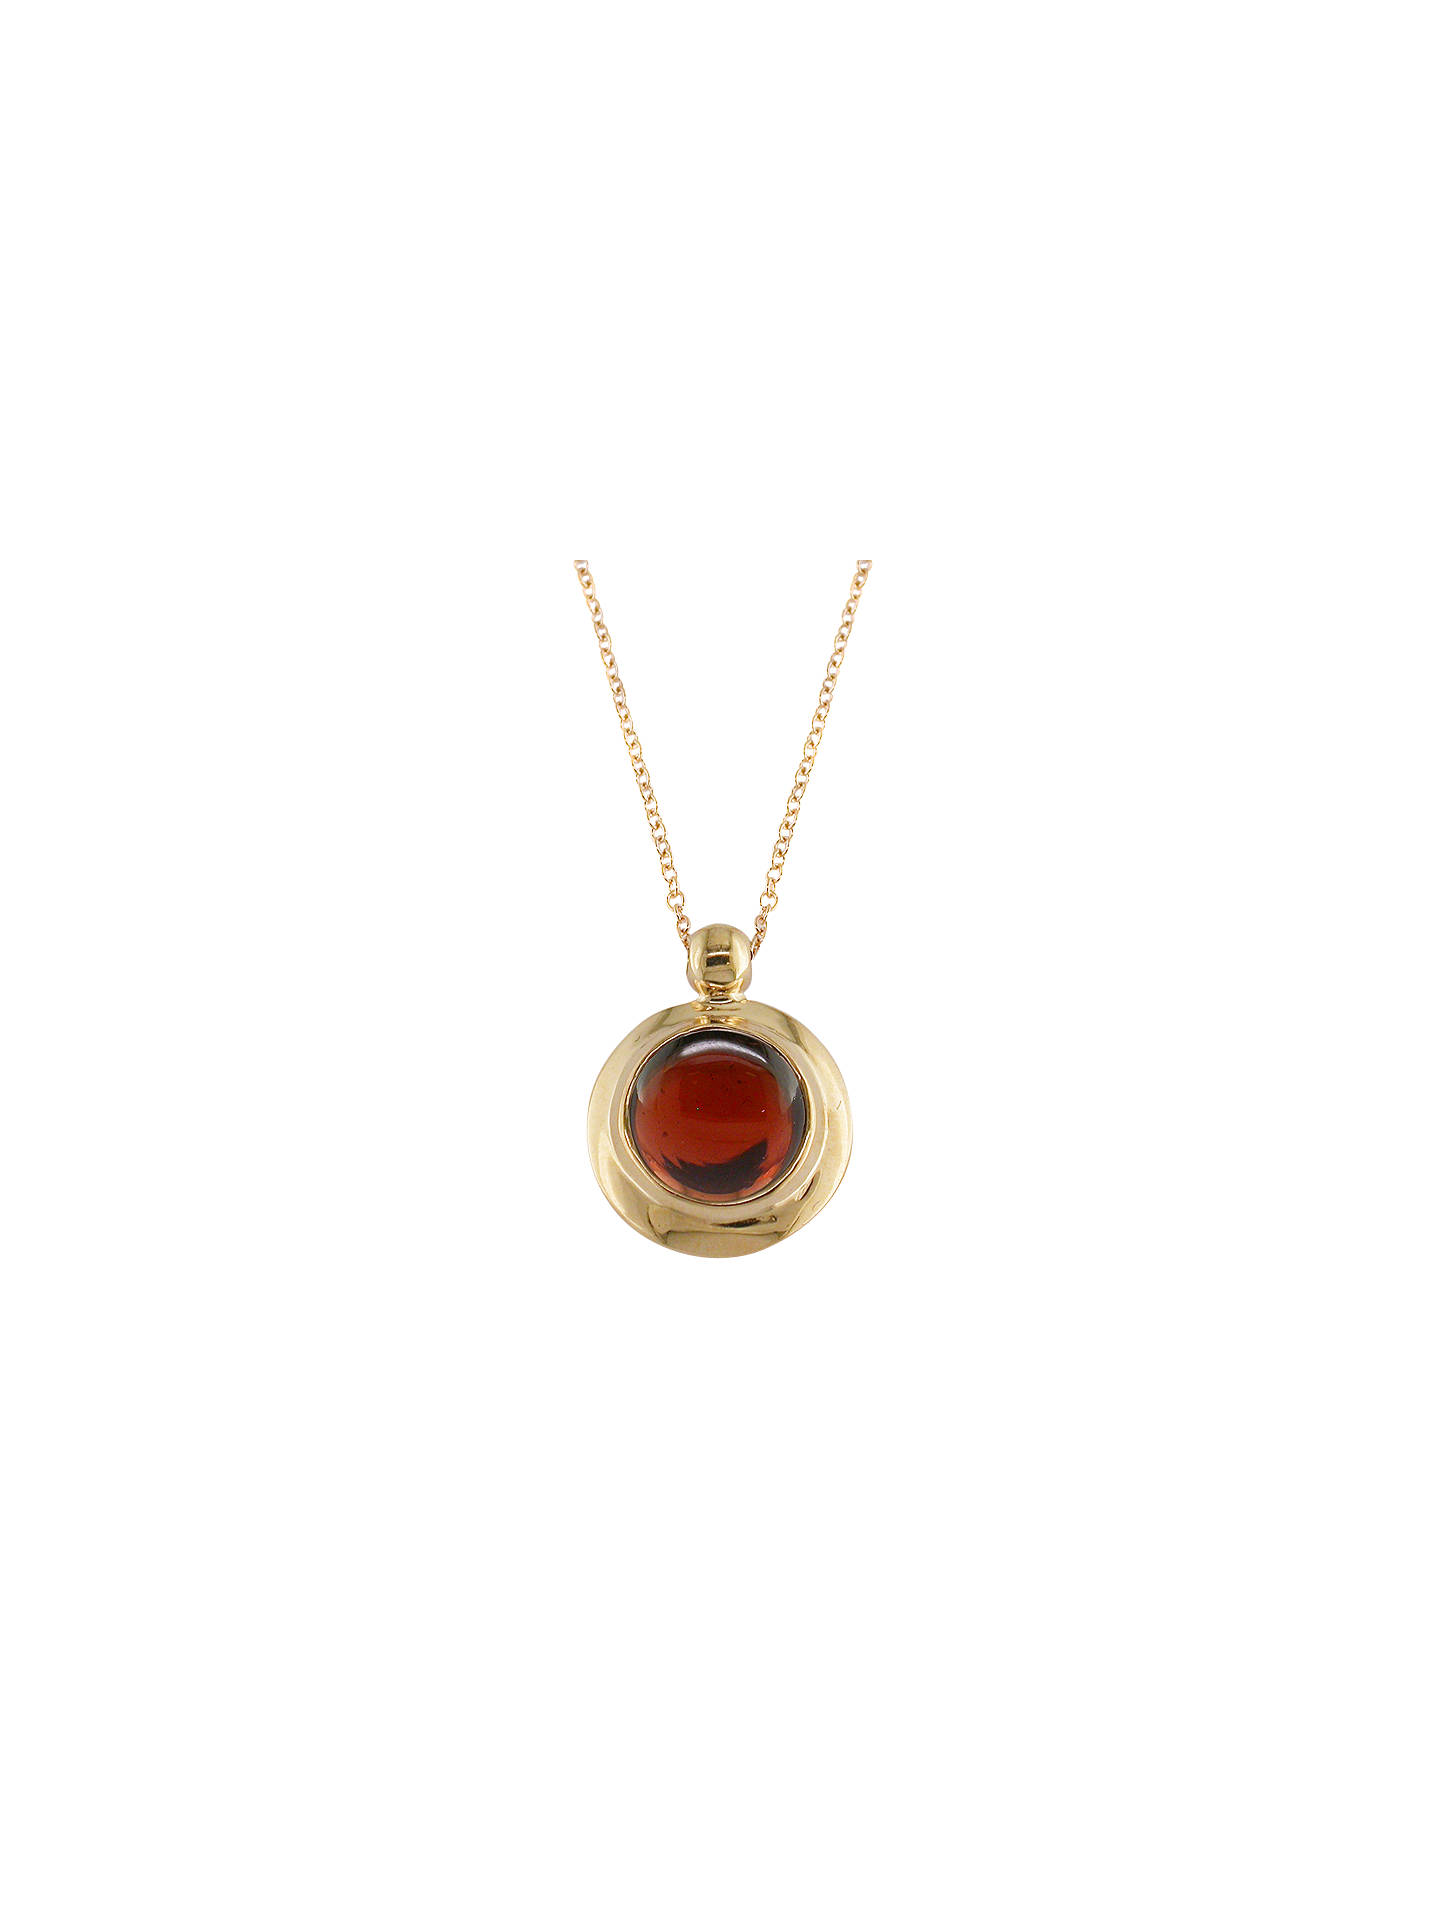 BuyLondon Road 9ct Rose Gold Pimlico Bubble Pendant Necklace, Garnet Online at johnlewis.com